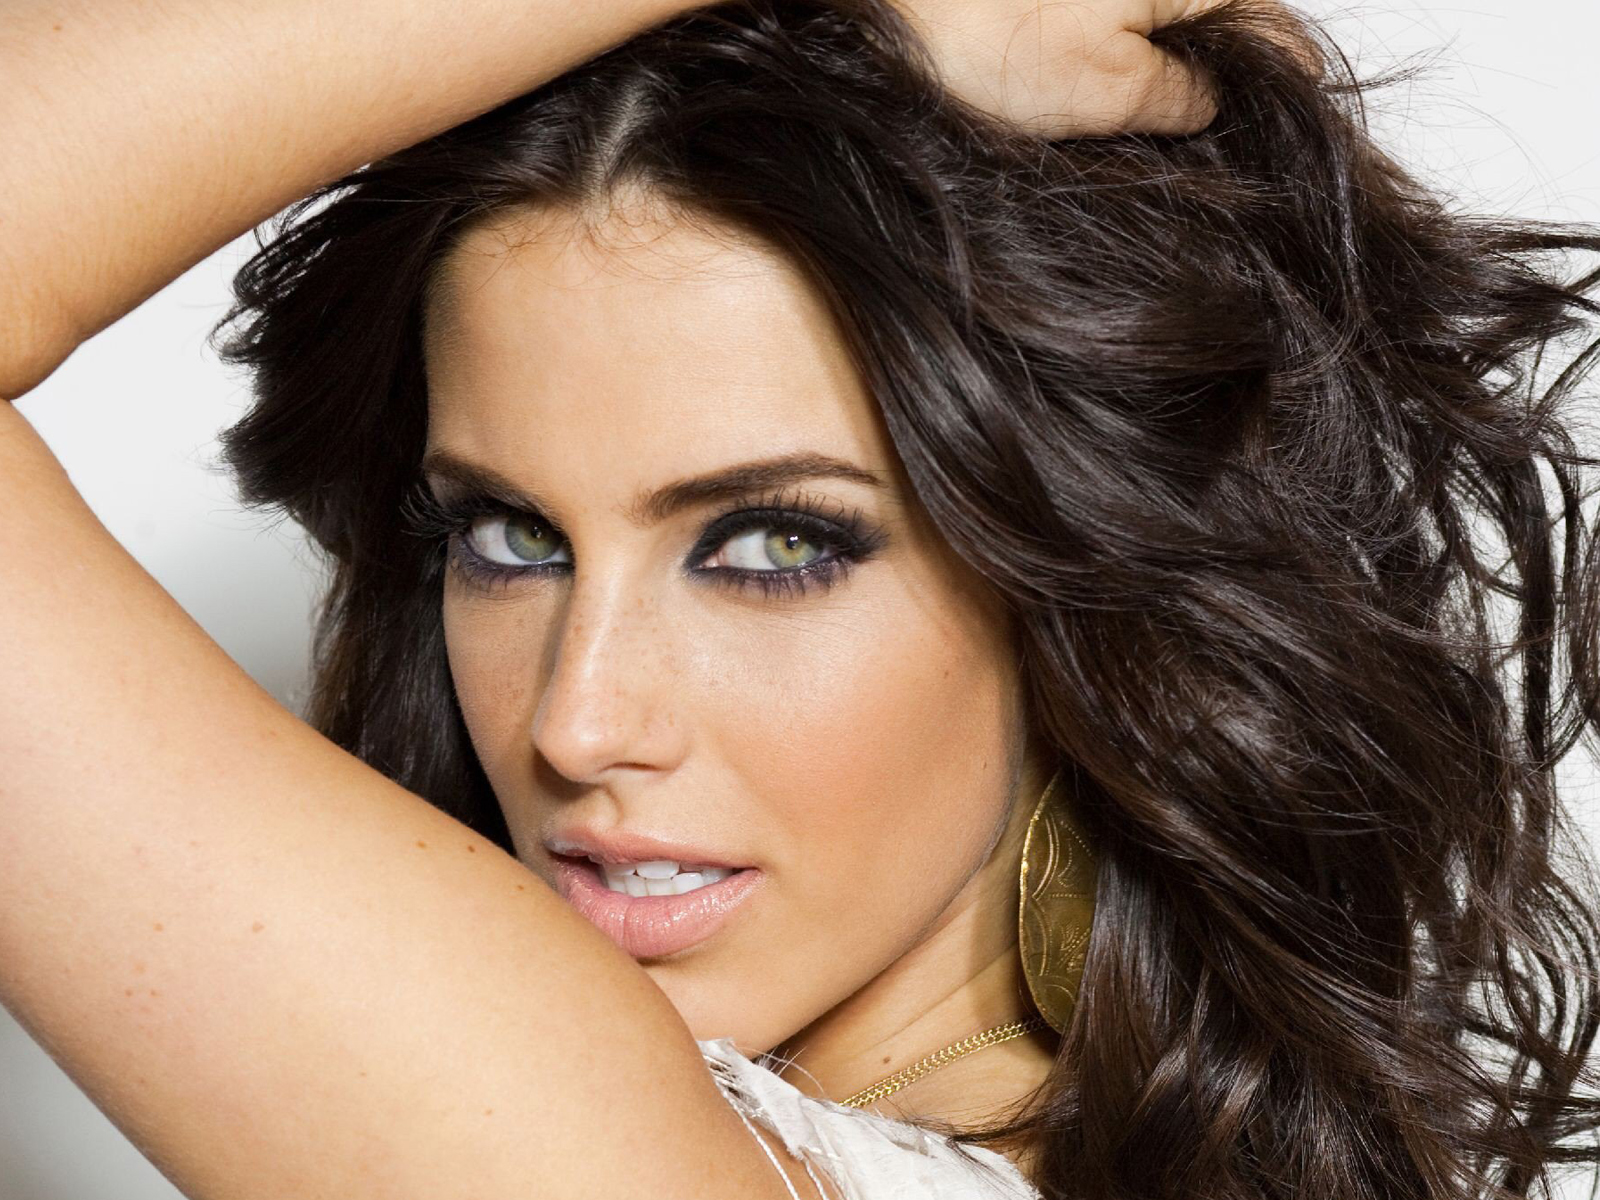 1600x1200 - Jessica Lowndes Wallpapers 13